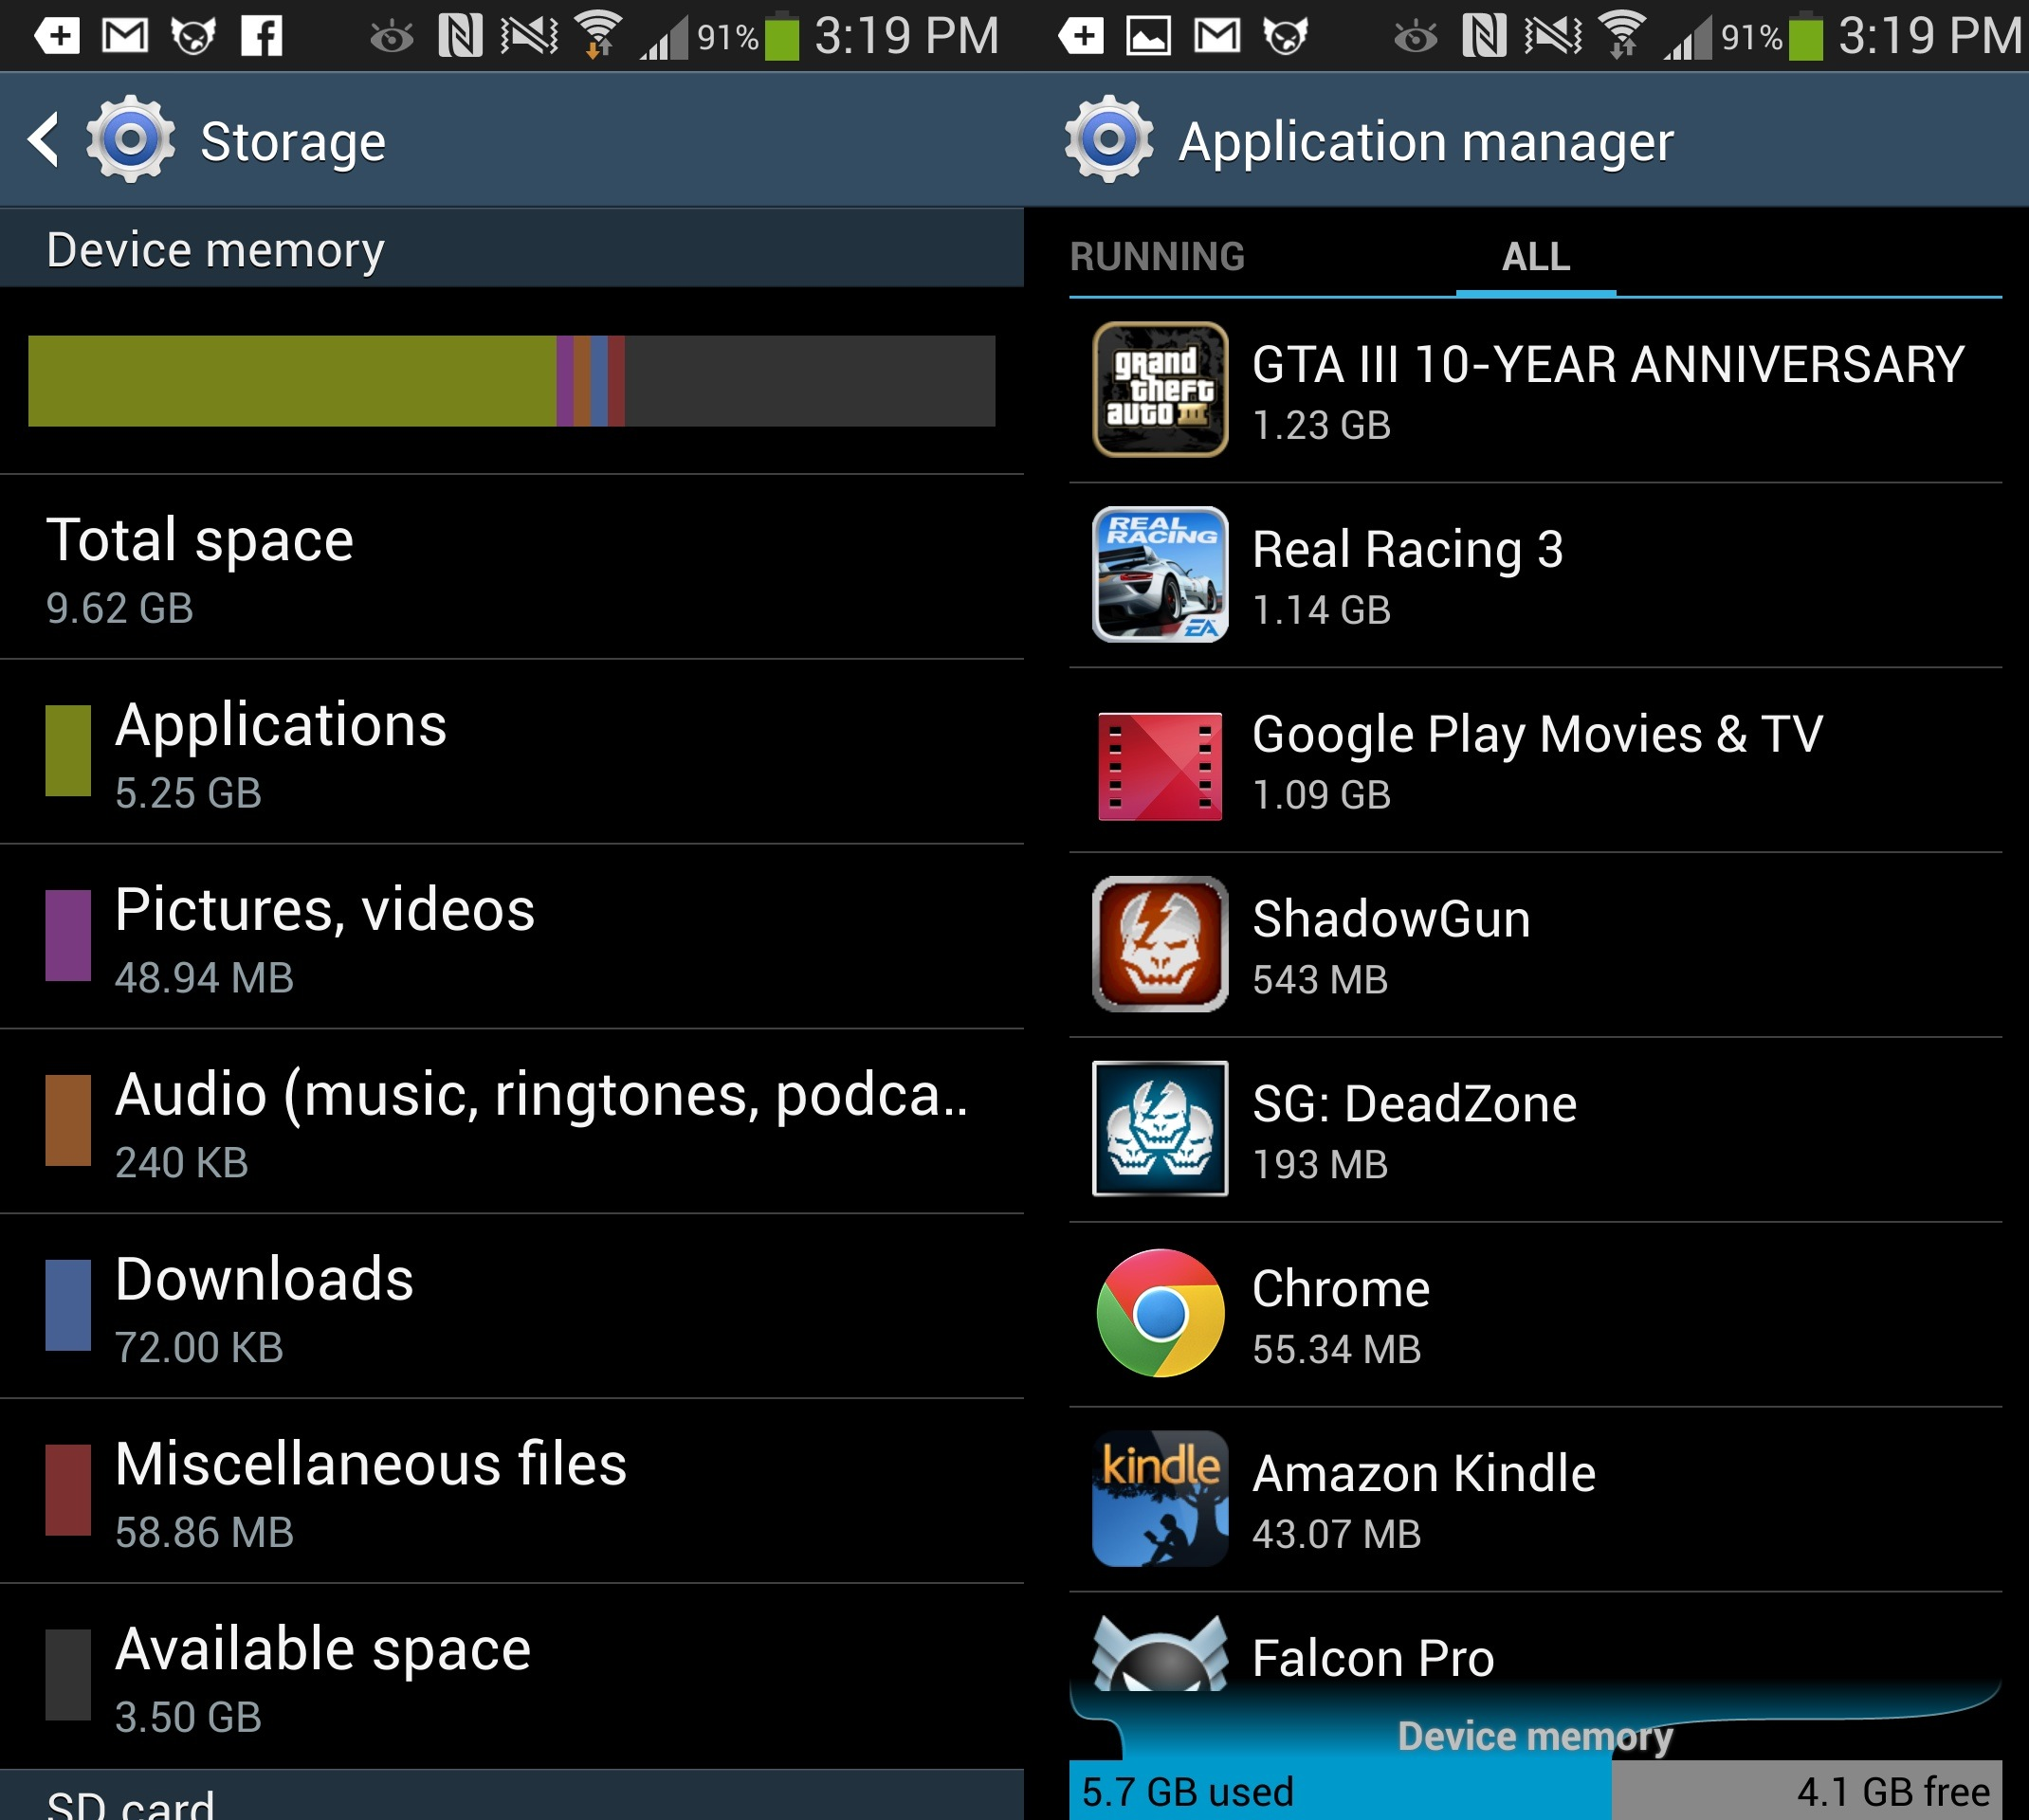 Samsung Galaxy S4 Update Fixes Storage Issues, Improves Camera